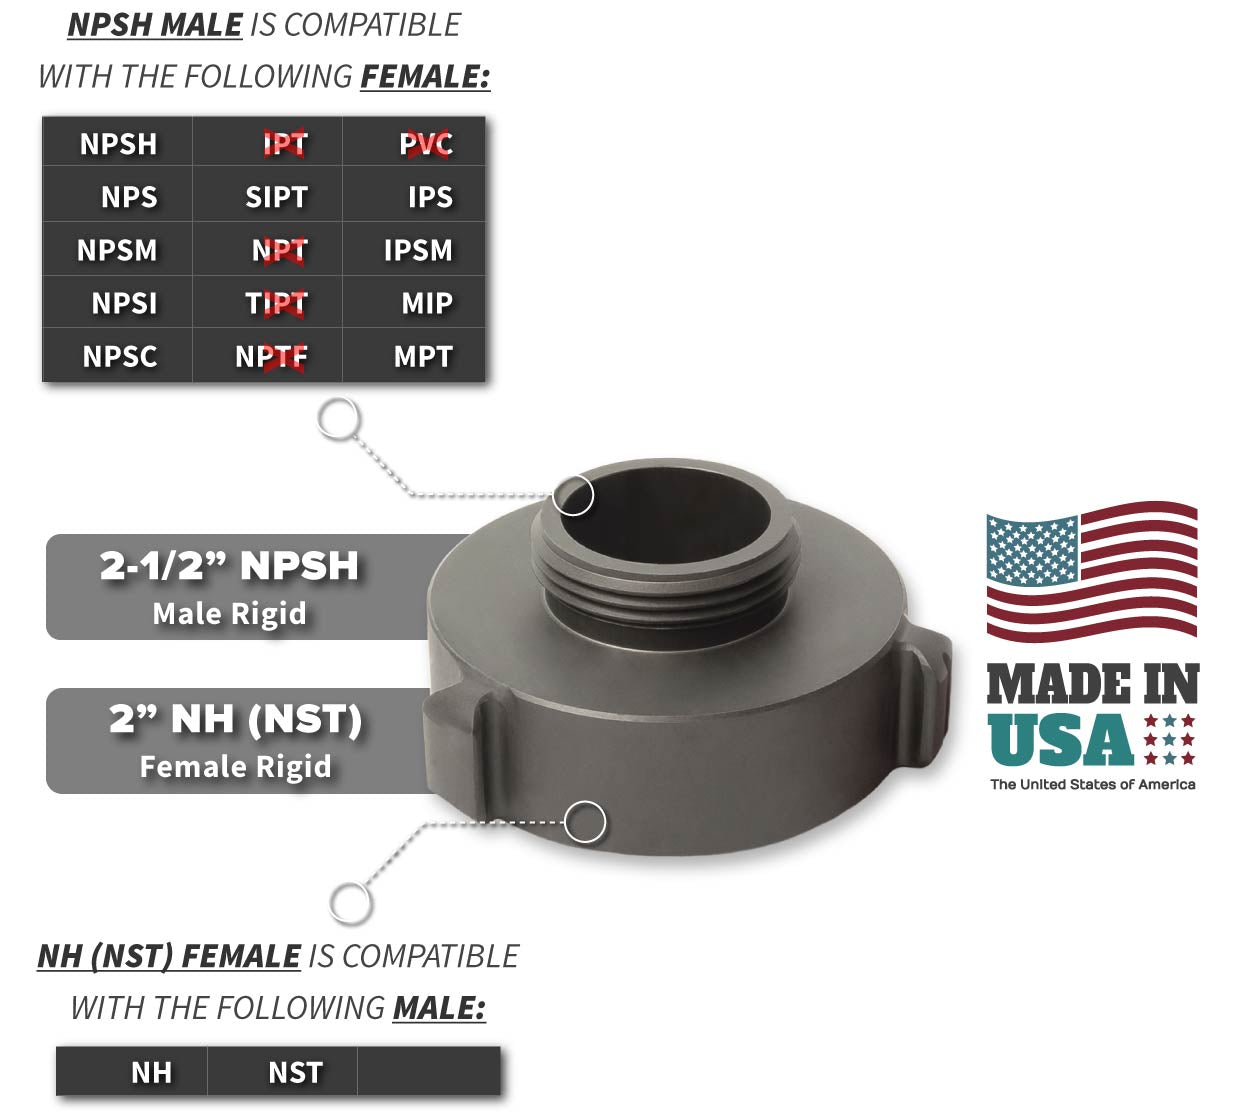 2 Inch NH-NST Female x 2.5 Inch NPSH Male Compatibility Thread Chart